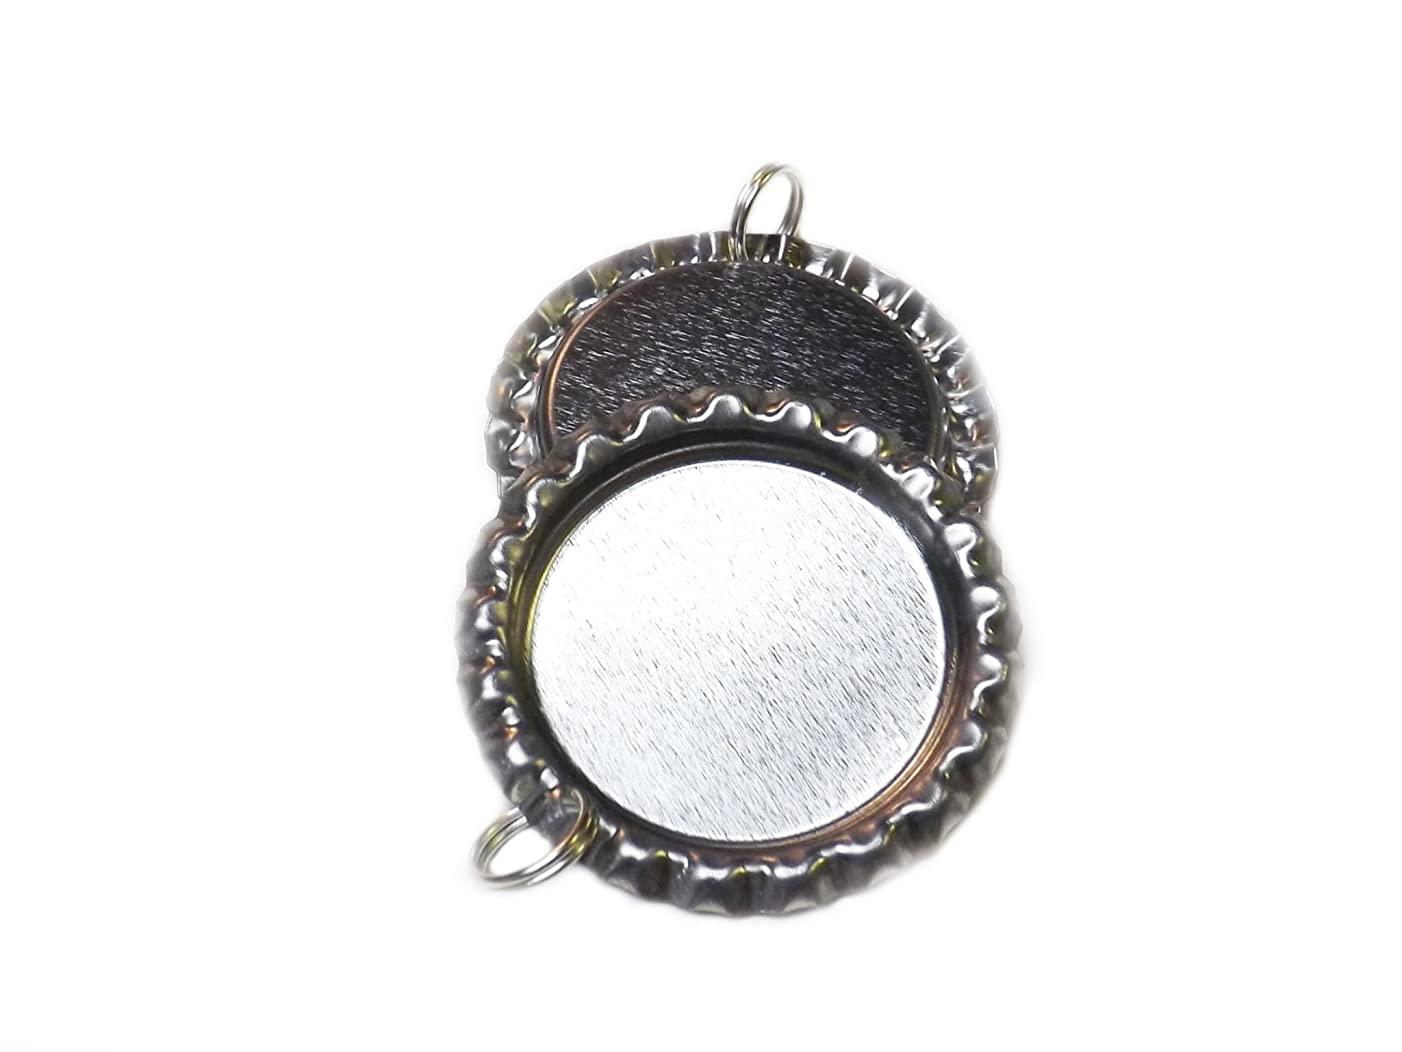 Bottle Caps,Beads and More(TM) 25 Flat Bottle Caps with Split Rings Attached - Bottlecap Photo Pendants for DIY Craft Kits